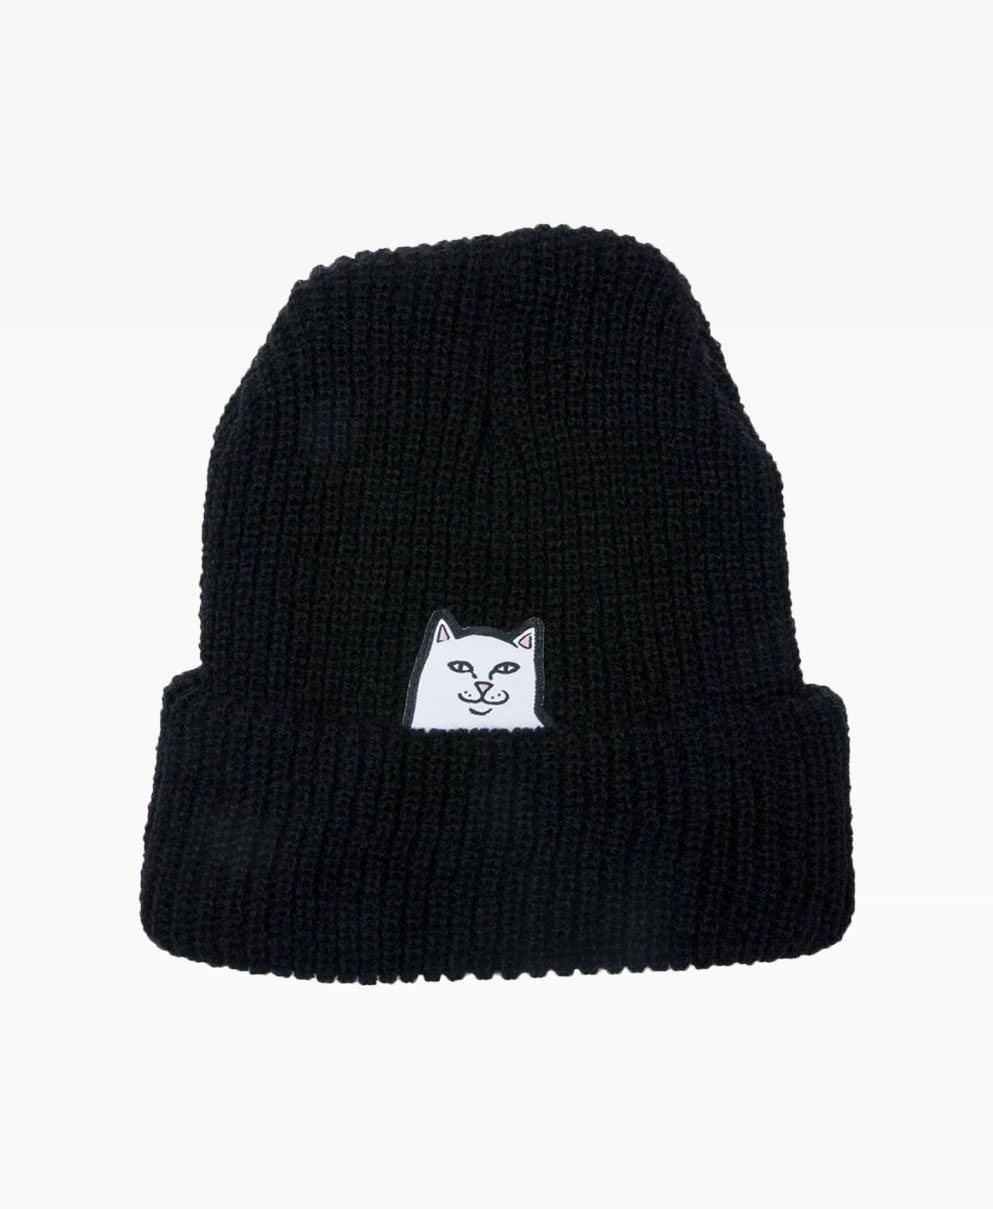 Ripndip Lord Nermal Ribbed Beanie Black Front